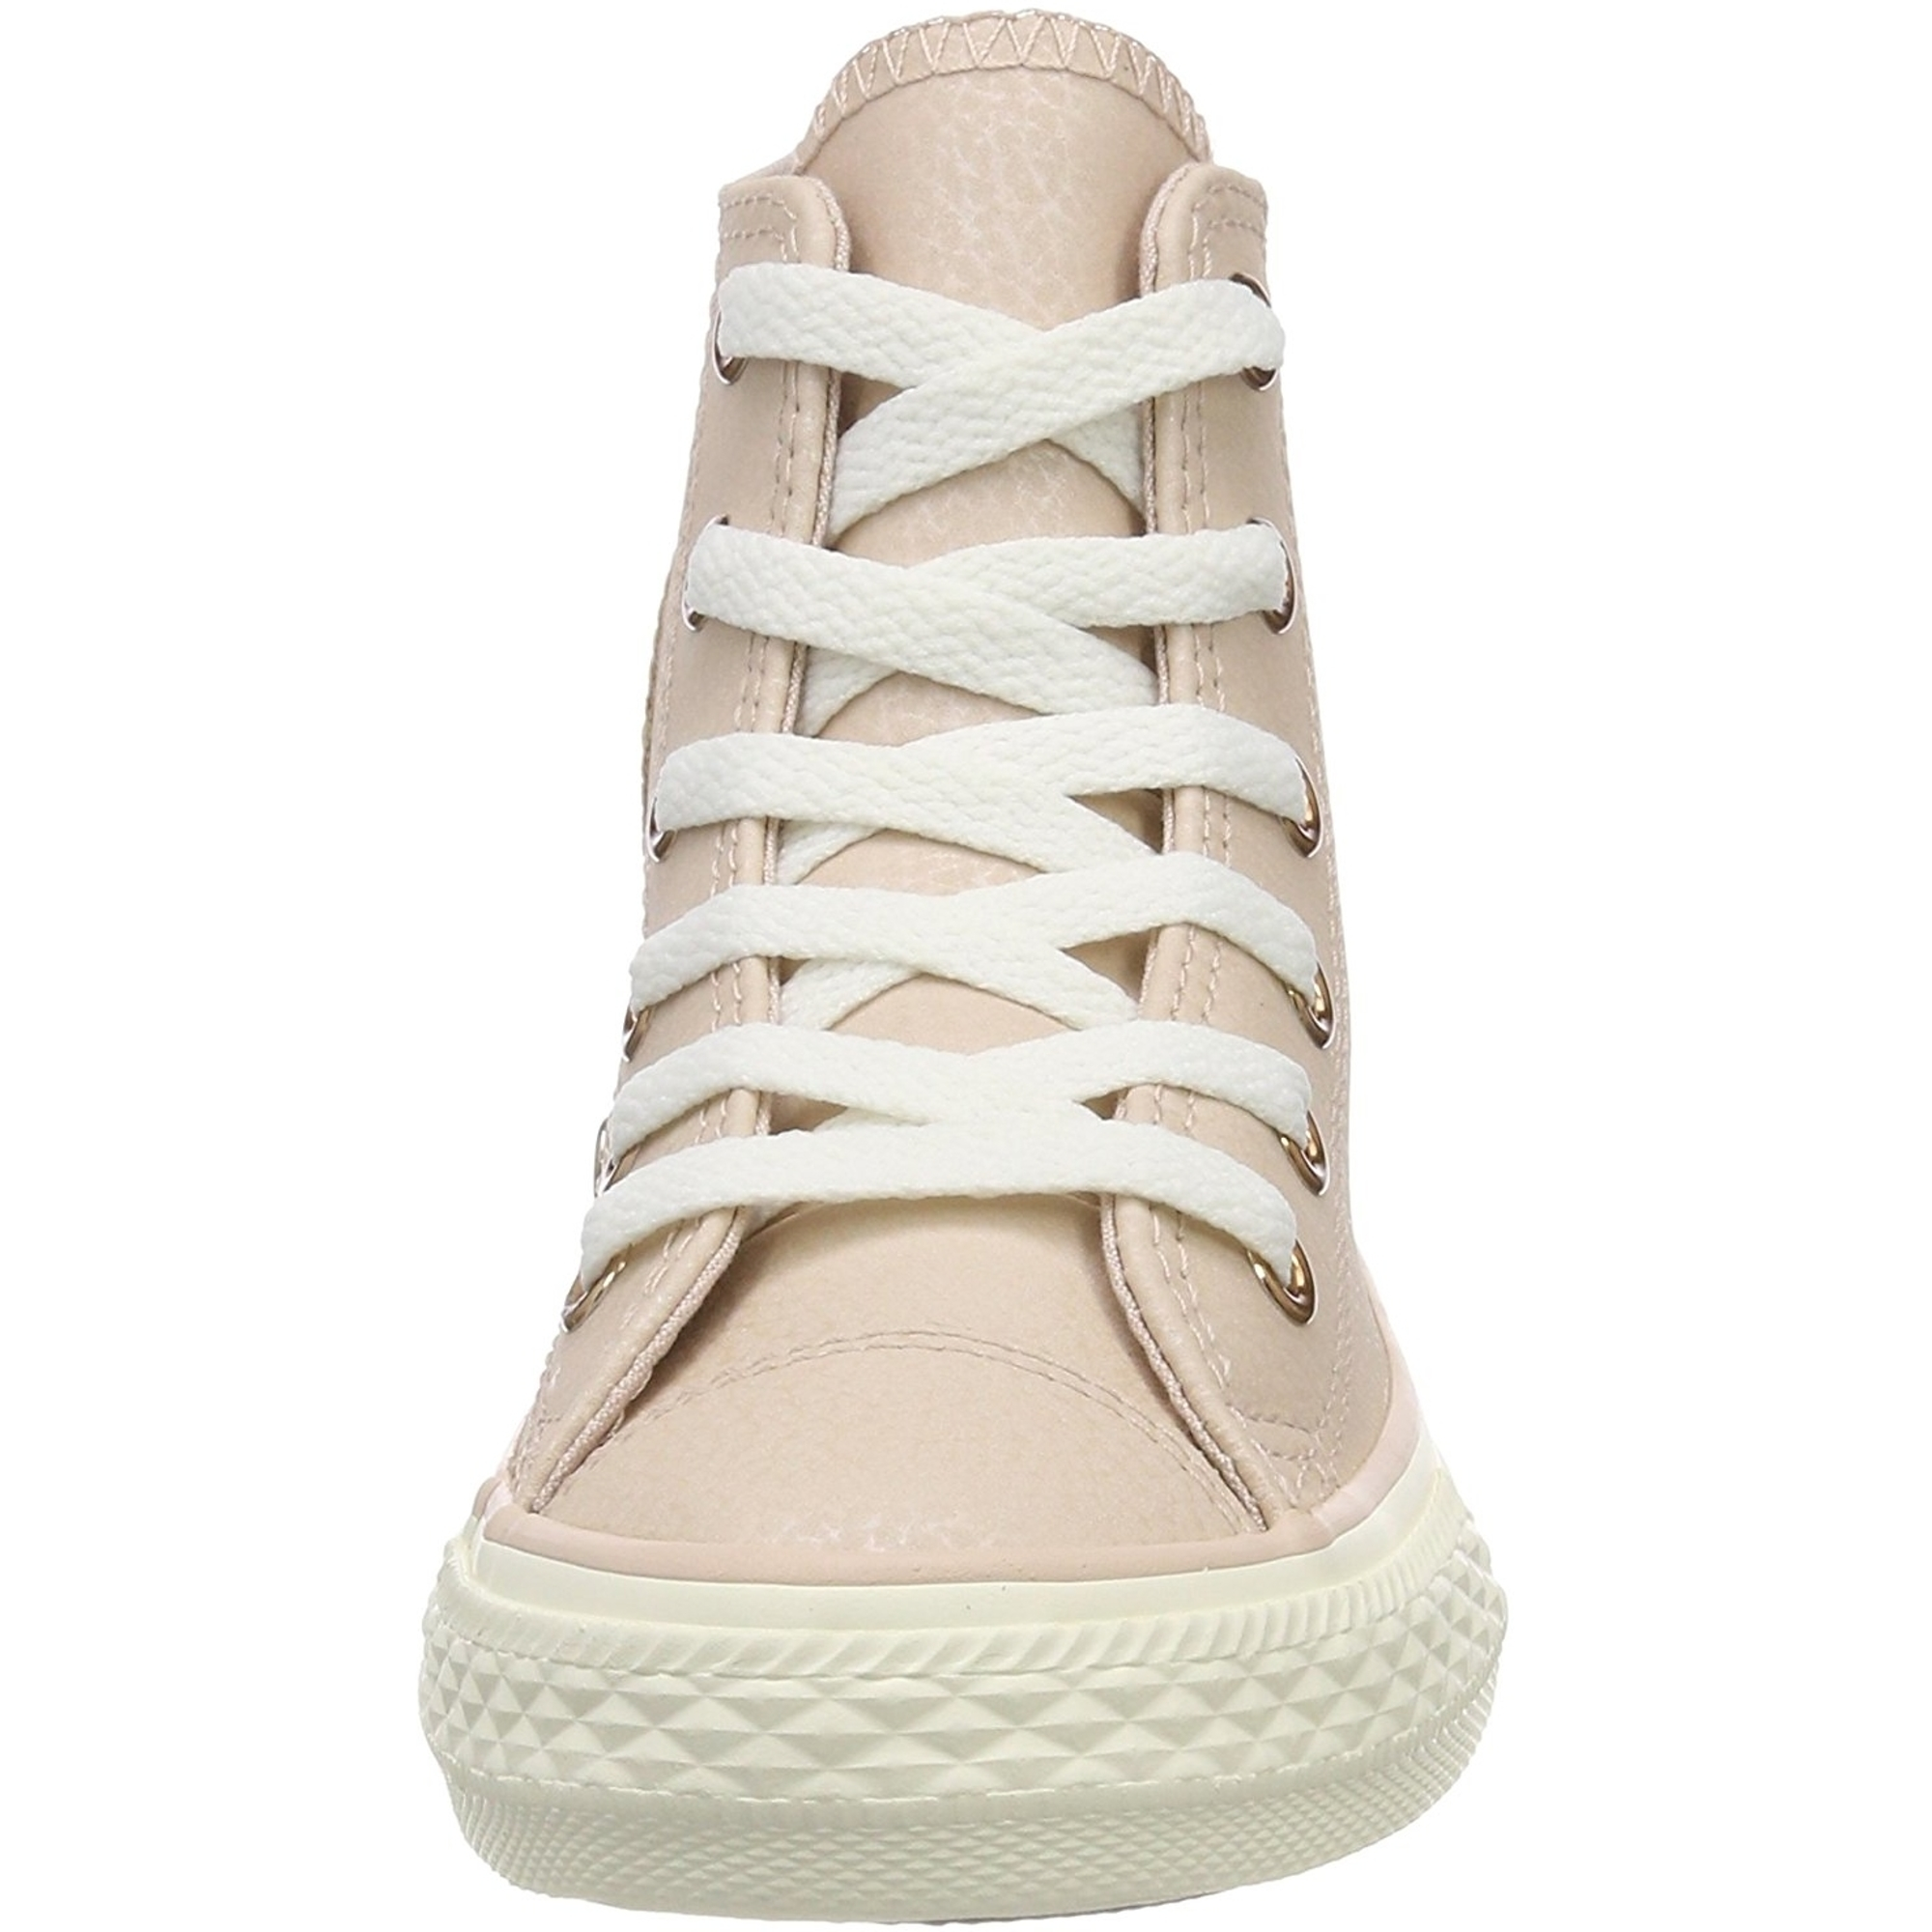 Converse Chuck Taylor All Star Leather Hi Particle Beige Leather Junior